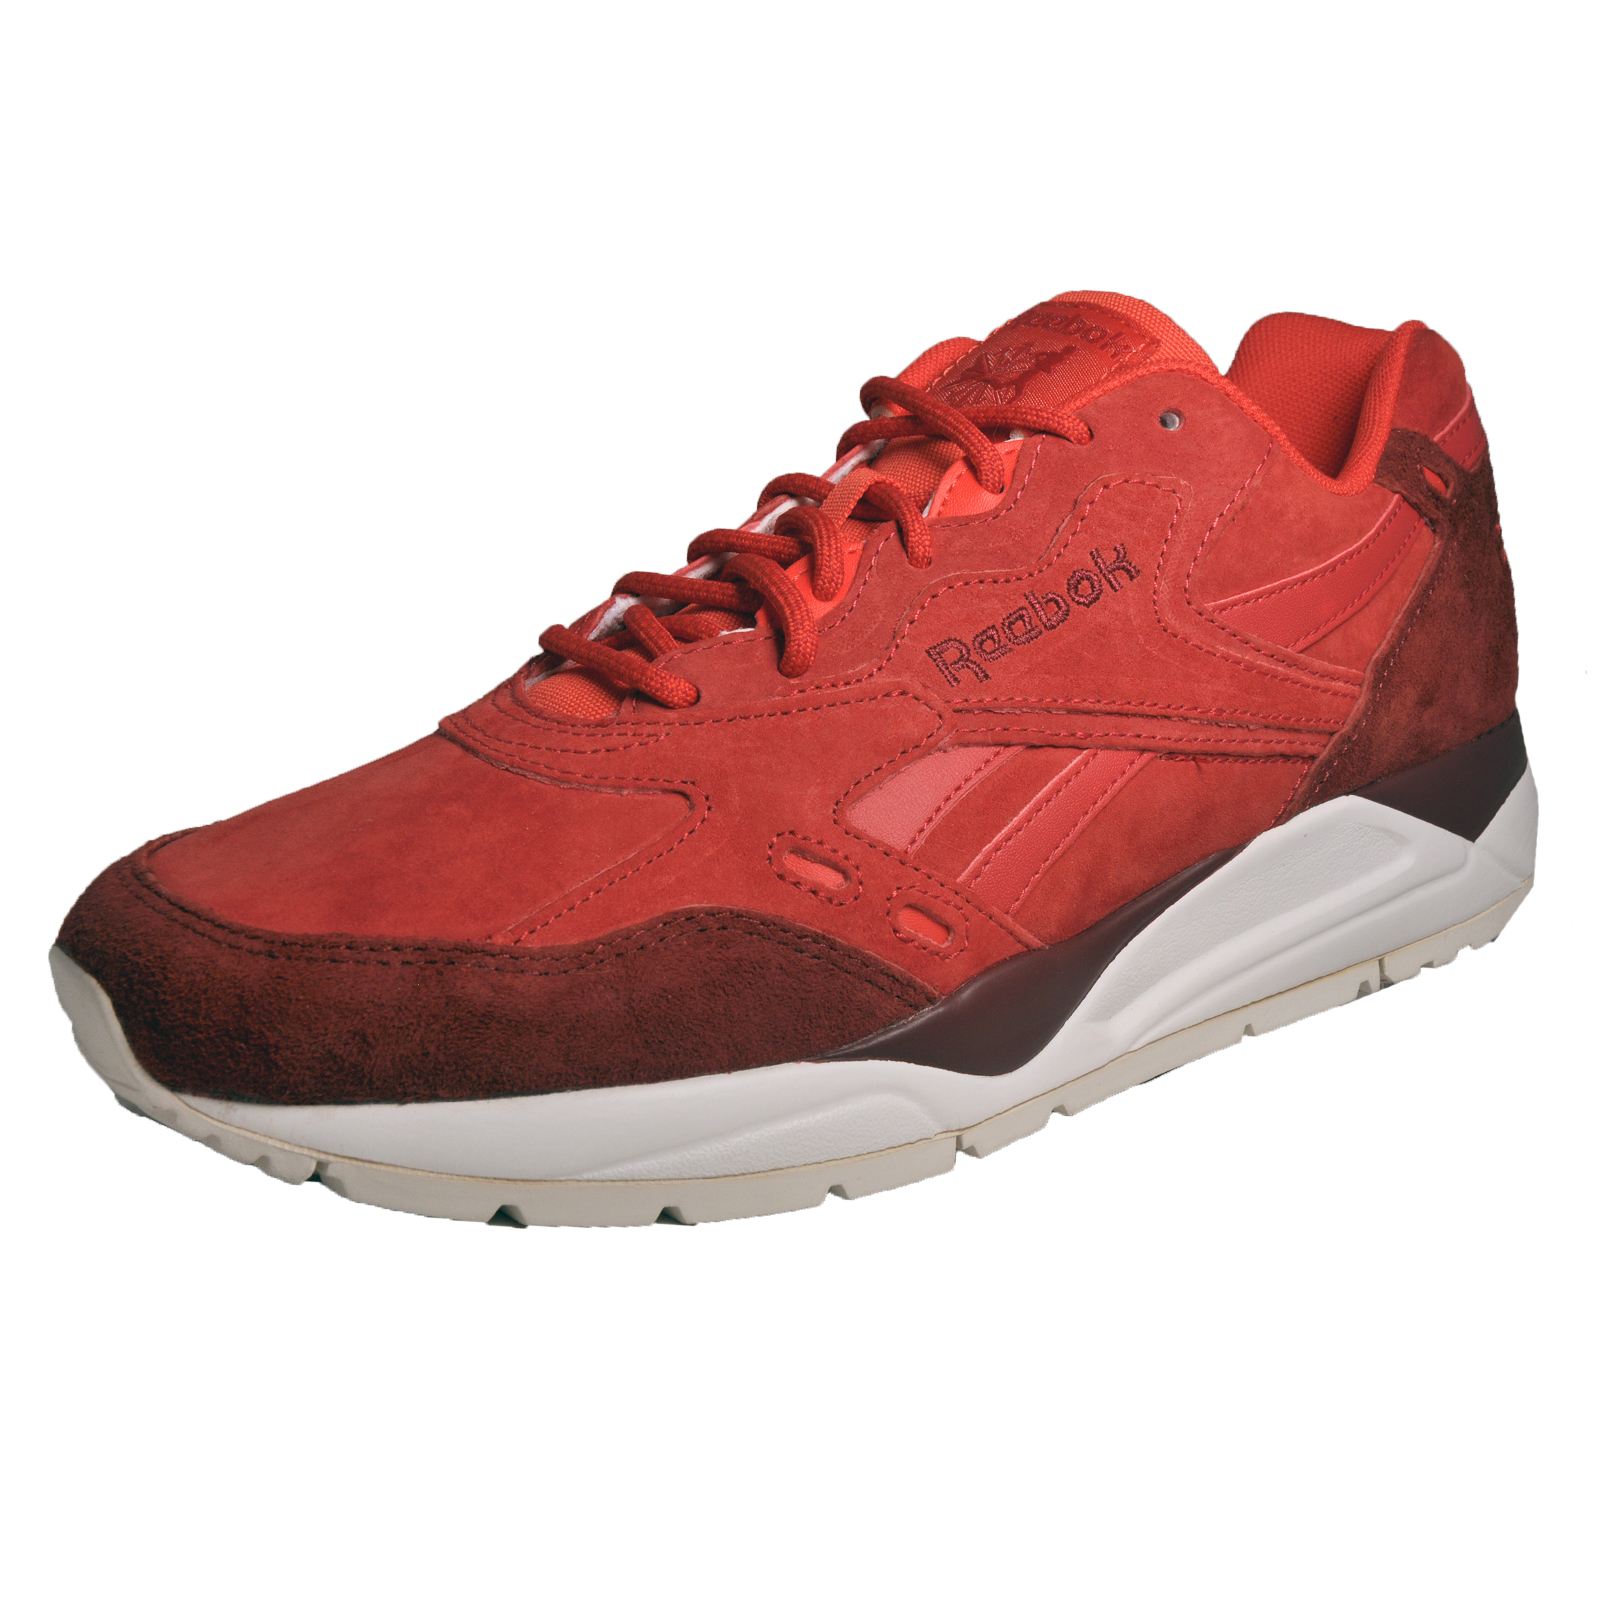 359d05006fba0f Details about Reebok Classic Bolton CP Mens Iconic Classic Casual Retro  Trainers Red LTD Editi